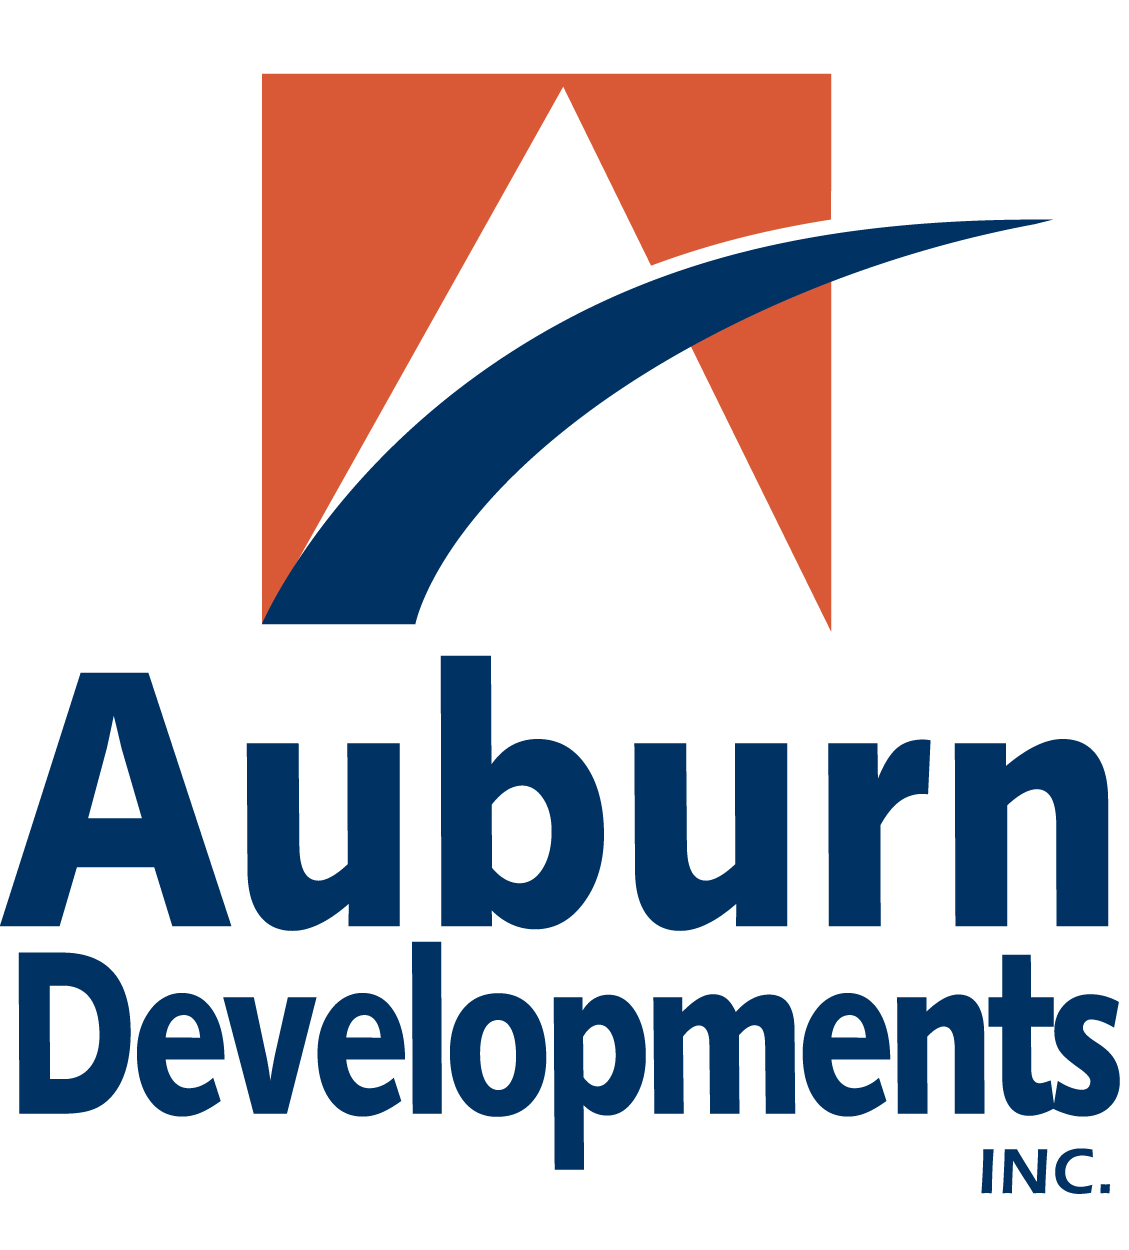 auburn developments logo art 1